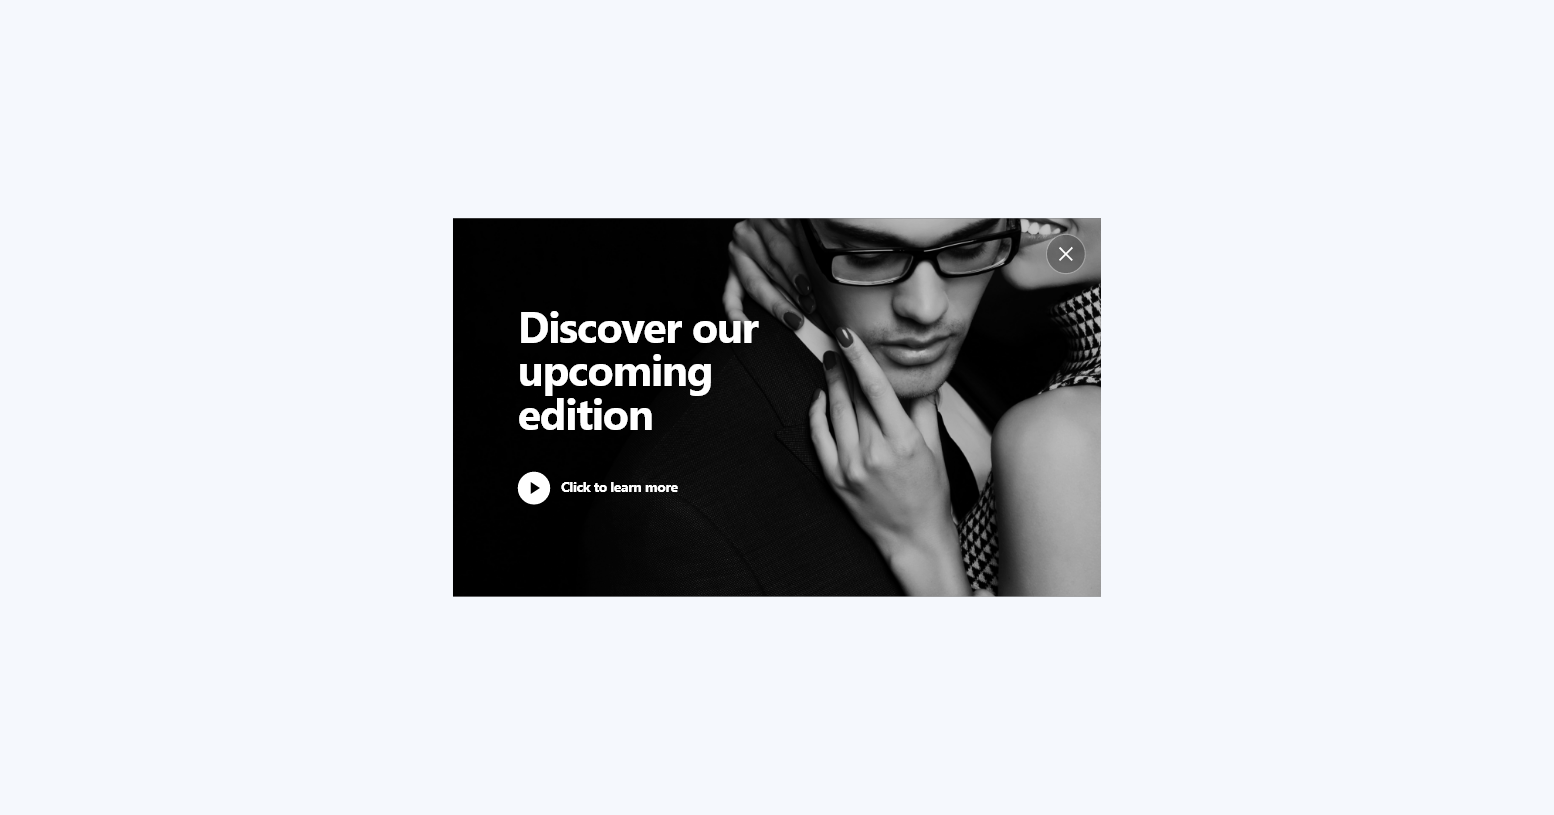 popupsmart content discover our upcoming edition middle popup design